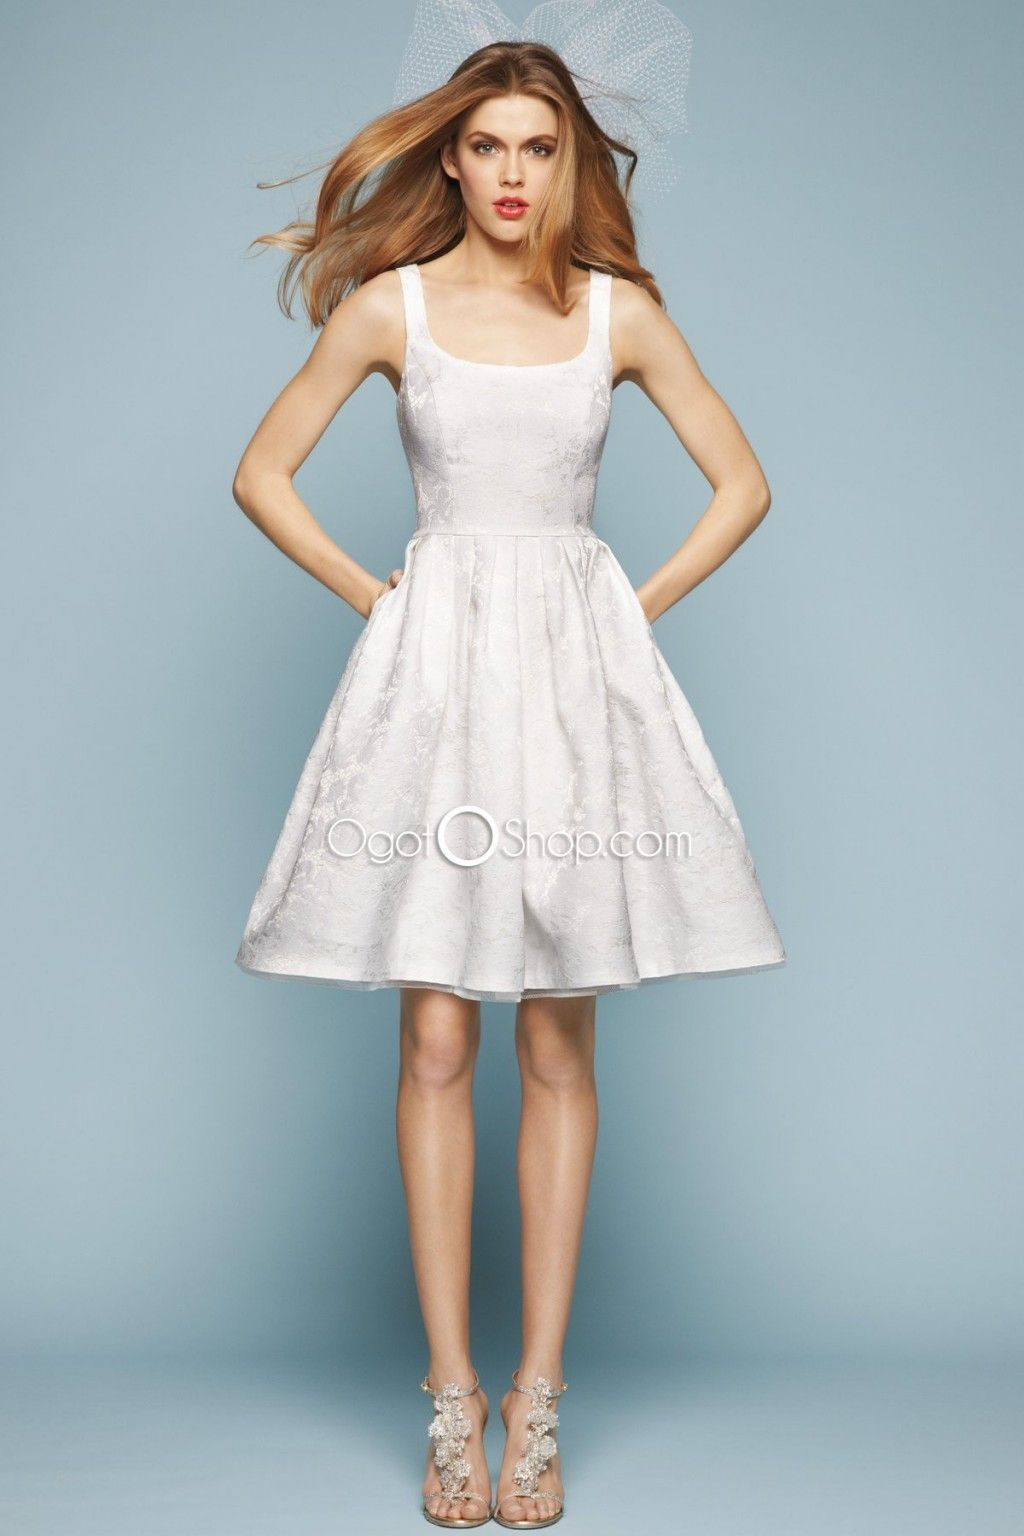 Fine Cheap All White Party Dresses Contemporary - Wedding Ideas ...